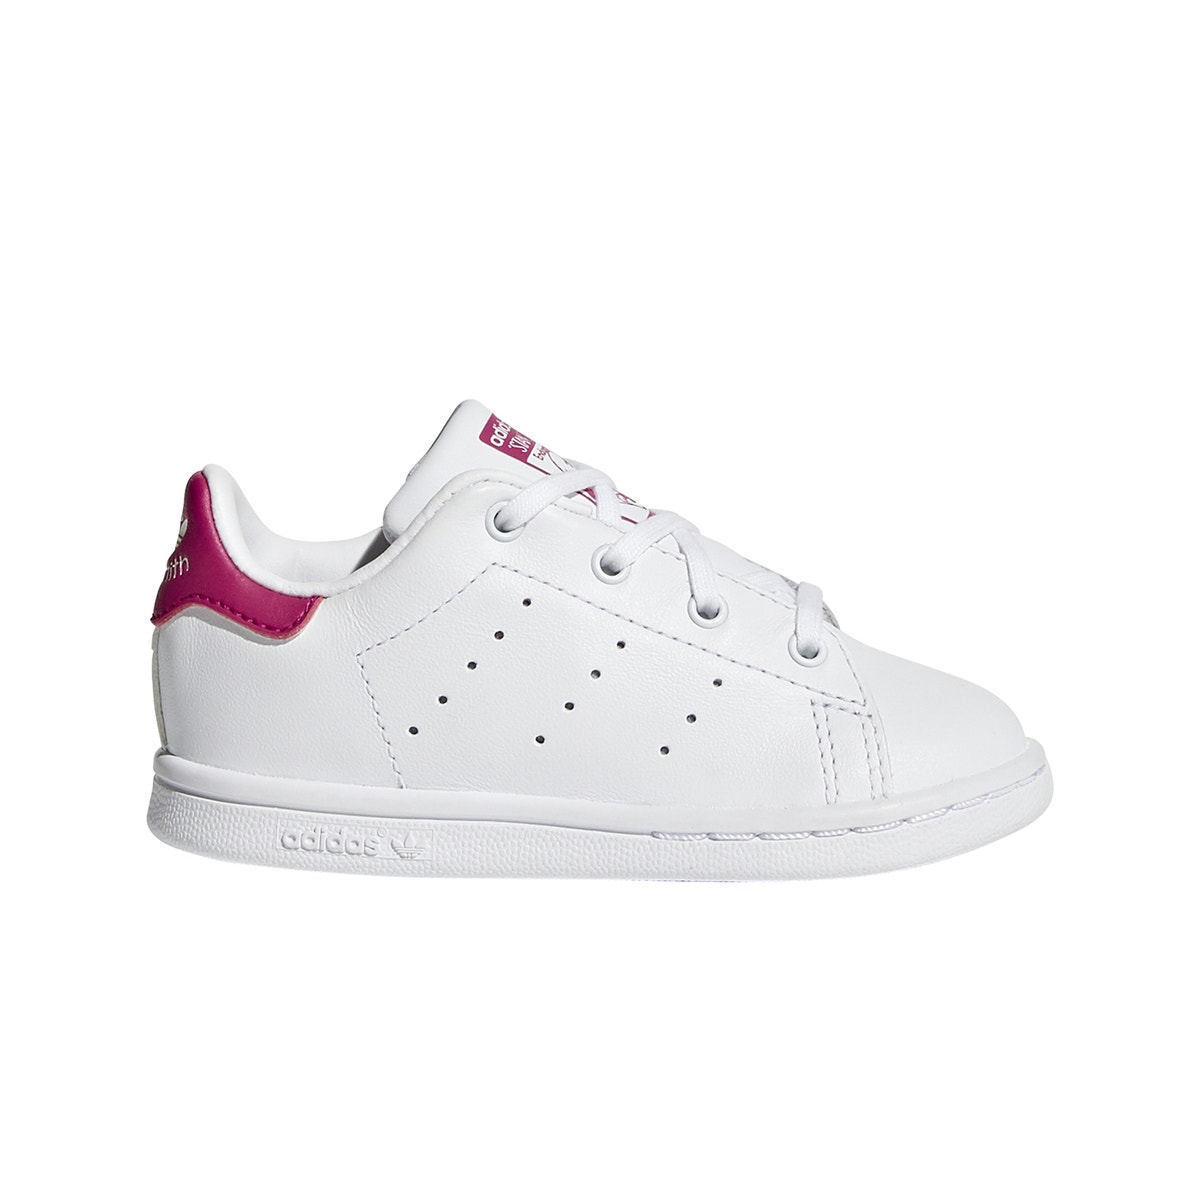 adidas Originals - Adidas Stan Smith I 350114785 - 1176